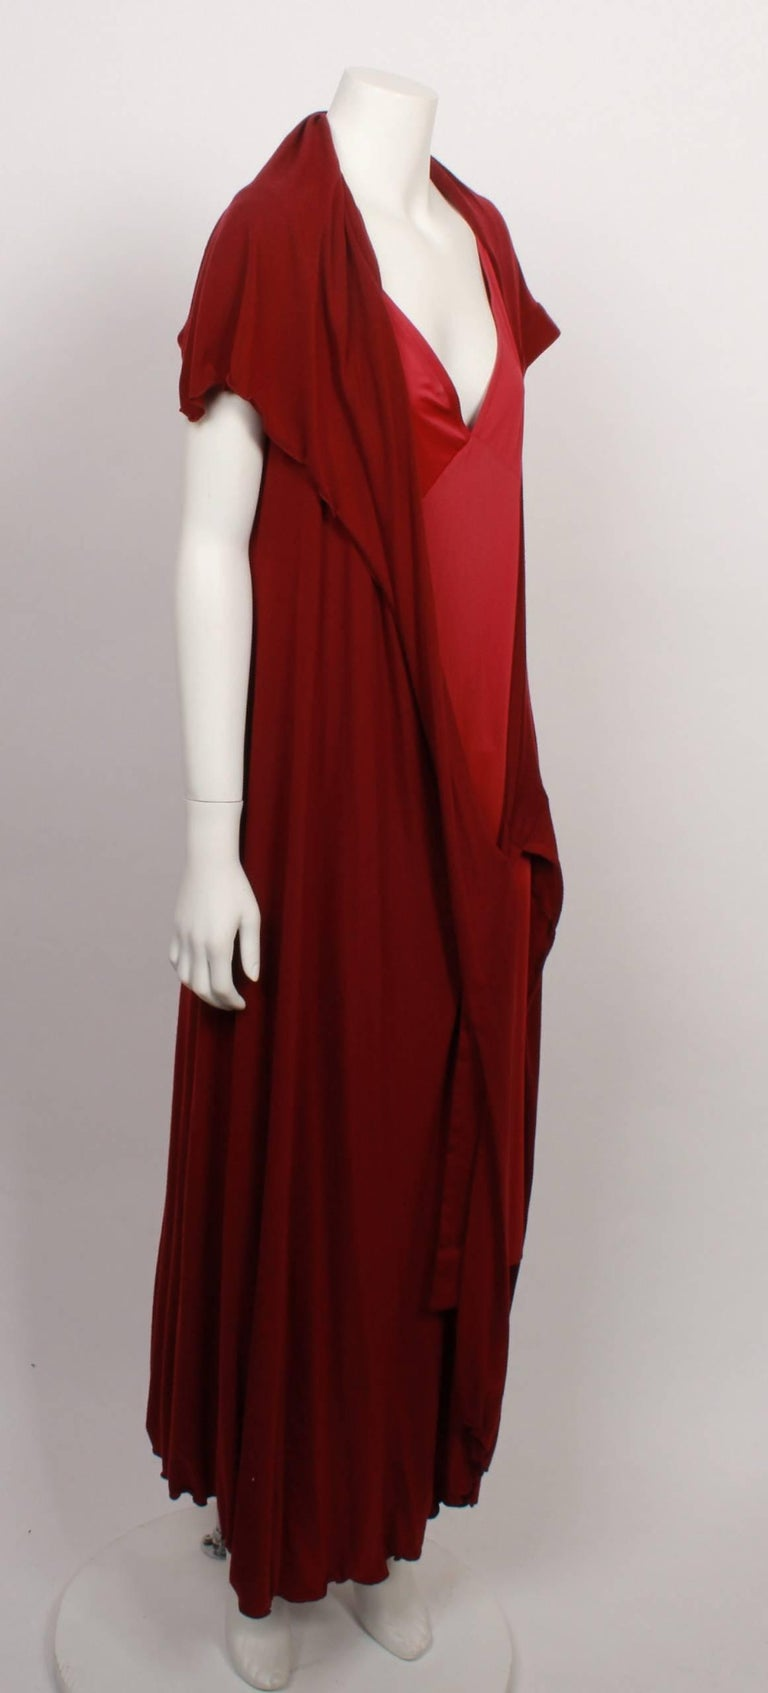 Issey Miyake Long Stretch Wrap and Under Slip Dress In Good Condition For Sale In Melbourne, Victoria